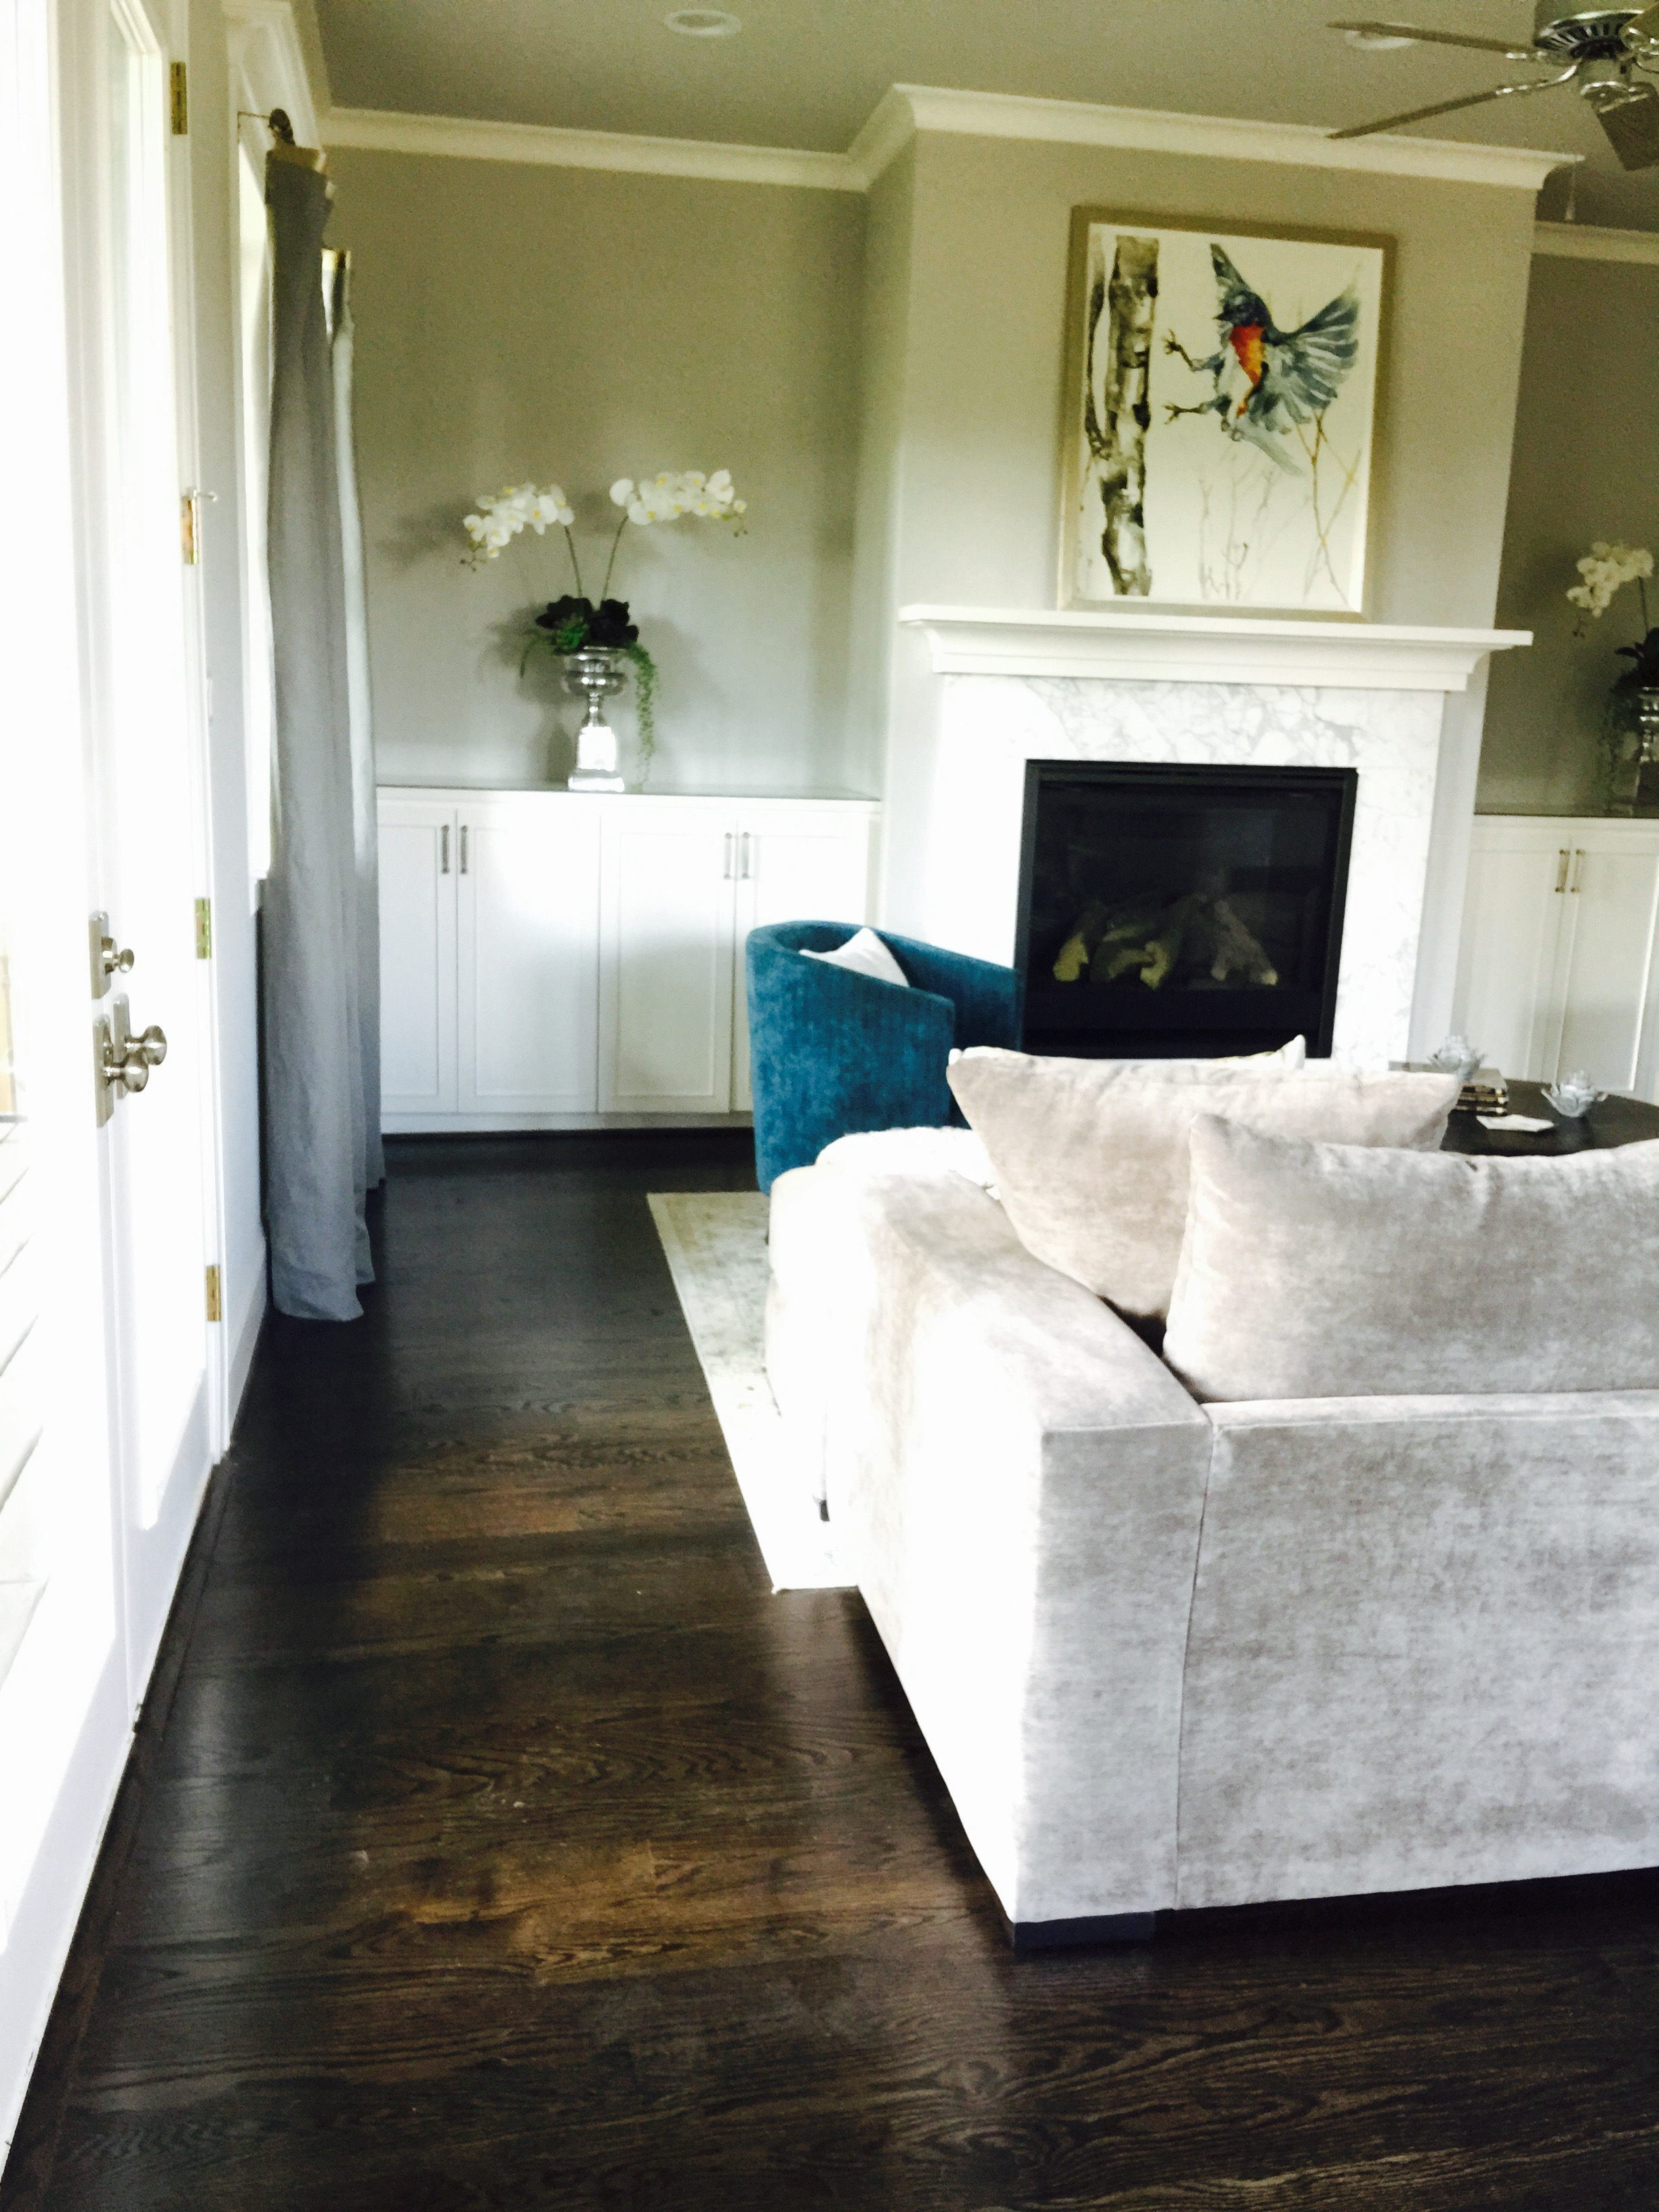 HARDWOOD FLOOR REFINISHING - Modern wood floor stains, dark chocolates, blacks-ebony, grays, white stains. new constructions, remodels, turn key, sales and service, dustless system.